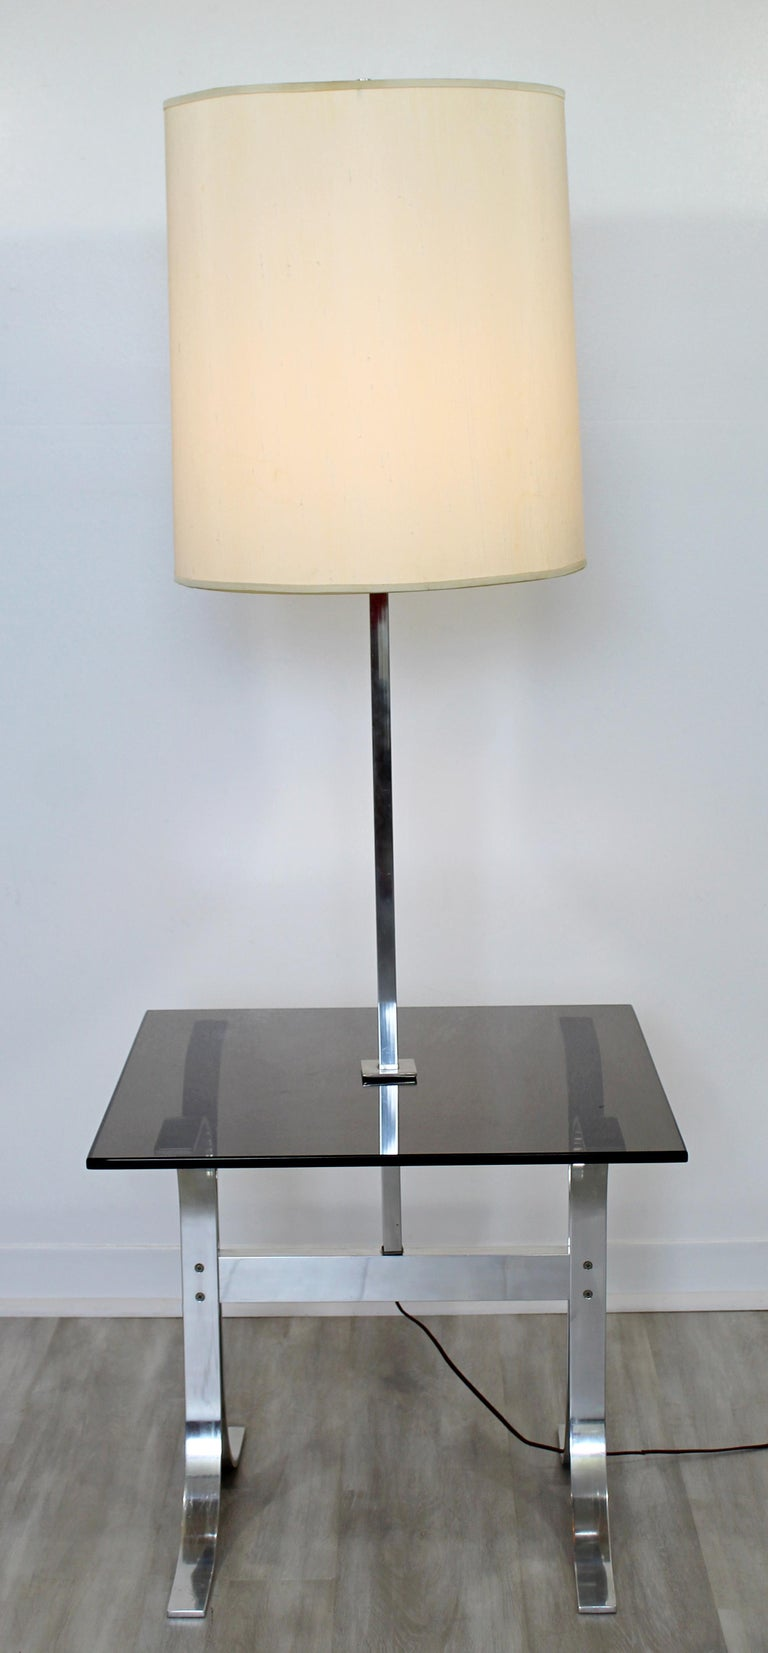 For your consideration is a gorgeous, chrome floor lamp, with a smoked glass table attached, circa 1970s. Includes original shade and finial. In very good vintage condition. The dimensions are 22